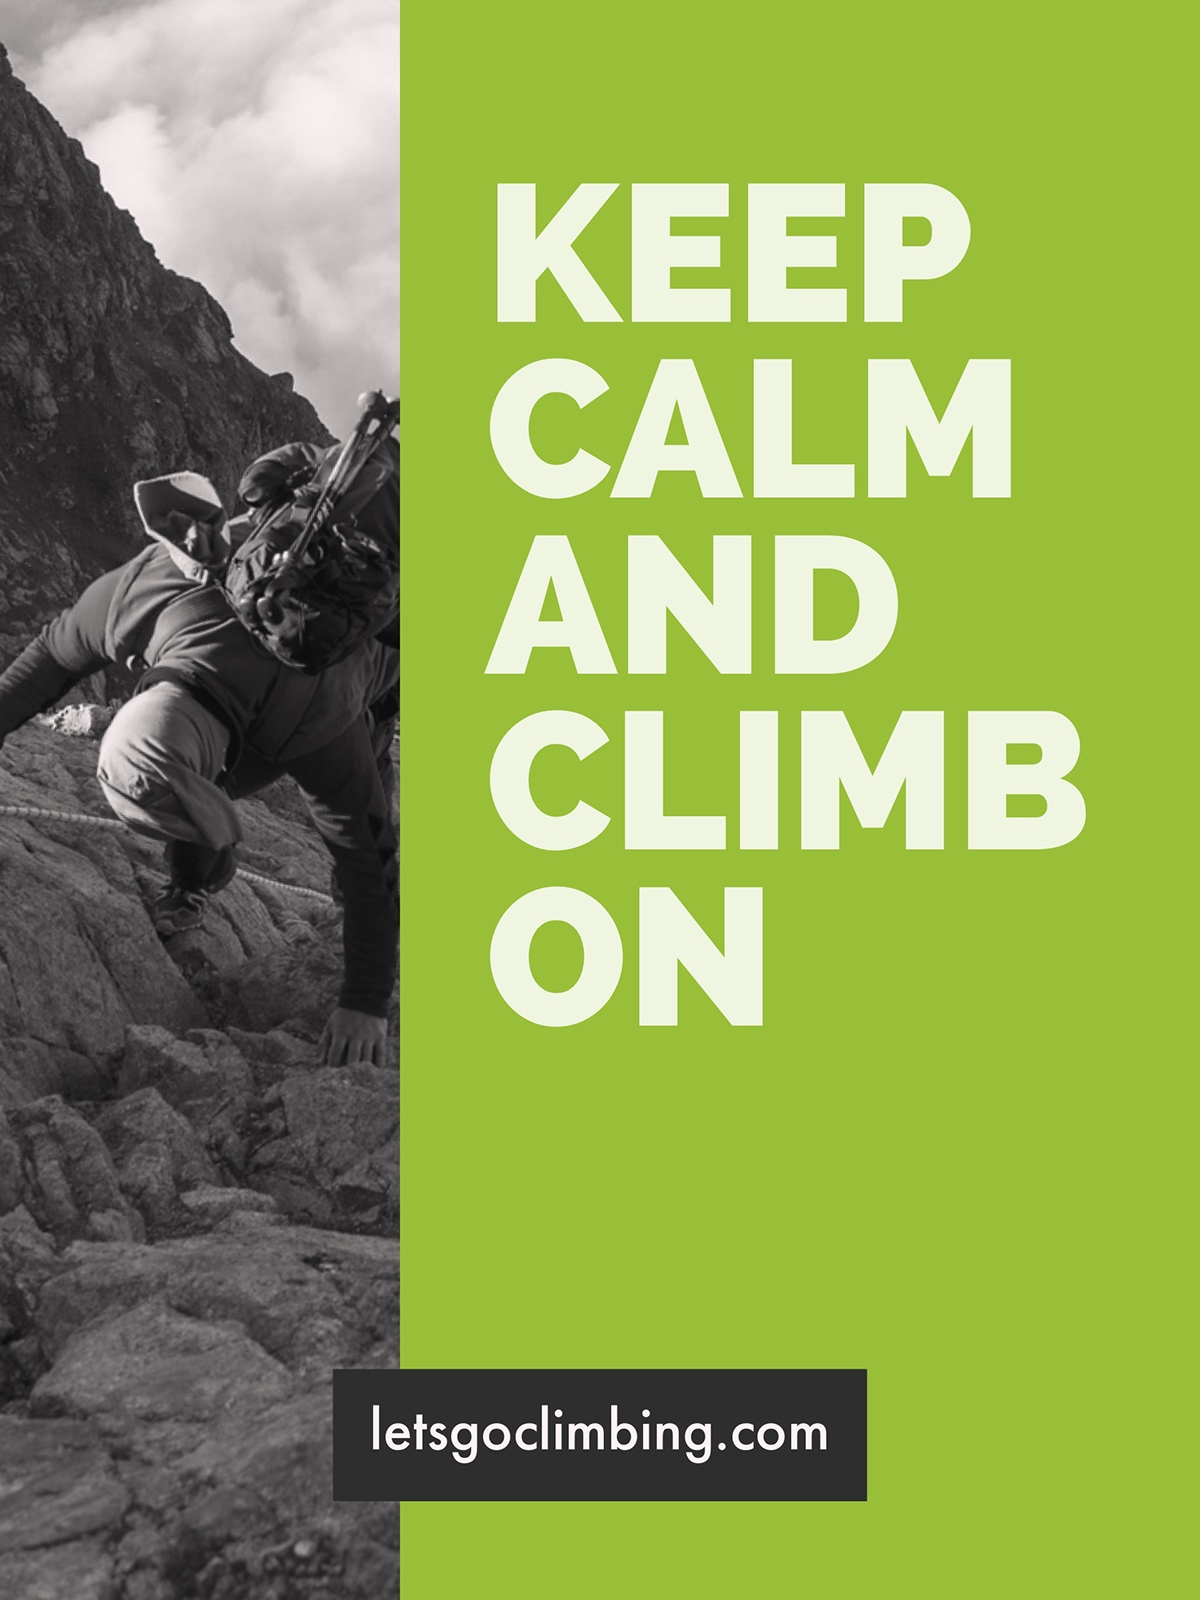 KEEP CALM AND CLIMB ON KEEP CALM AND CLIMB ON letsgoclimbing.com